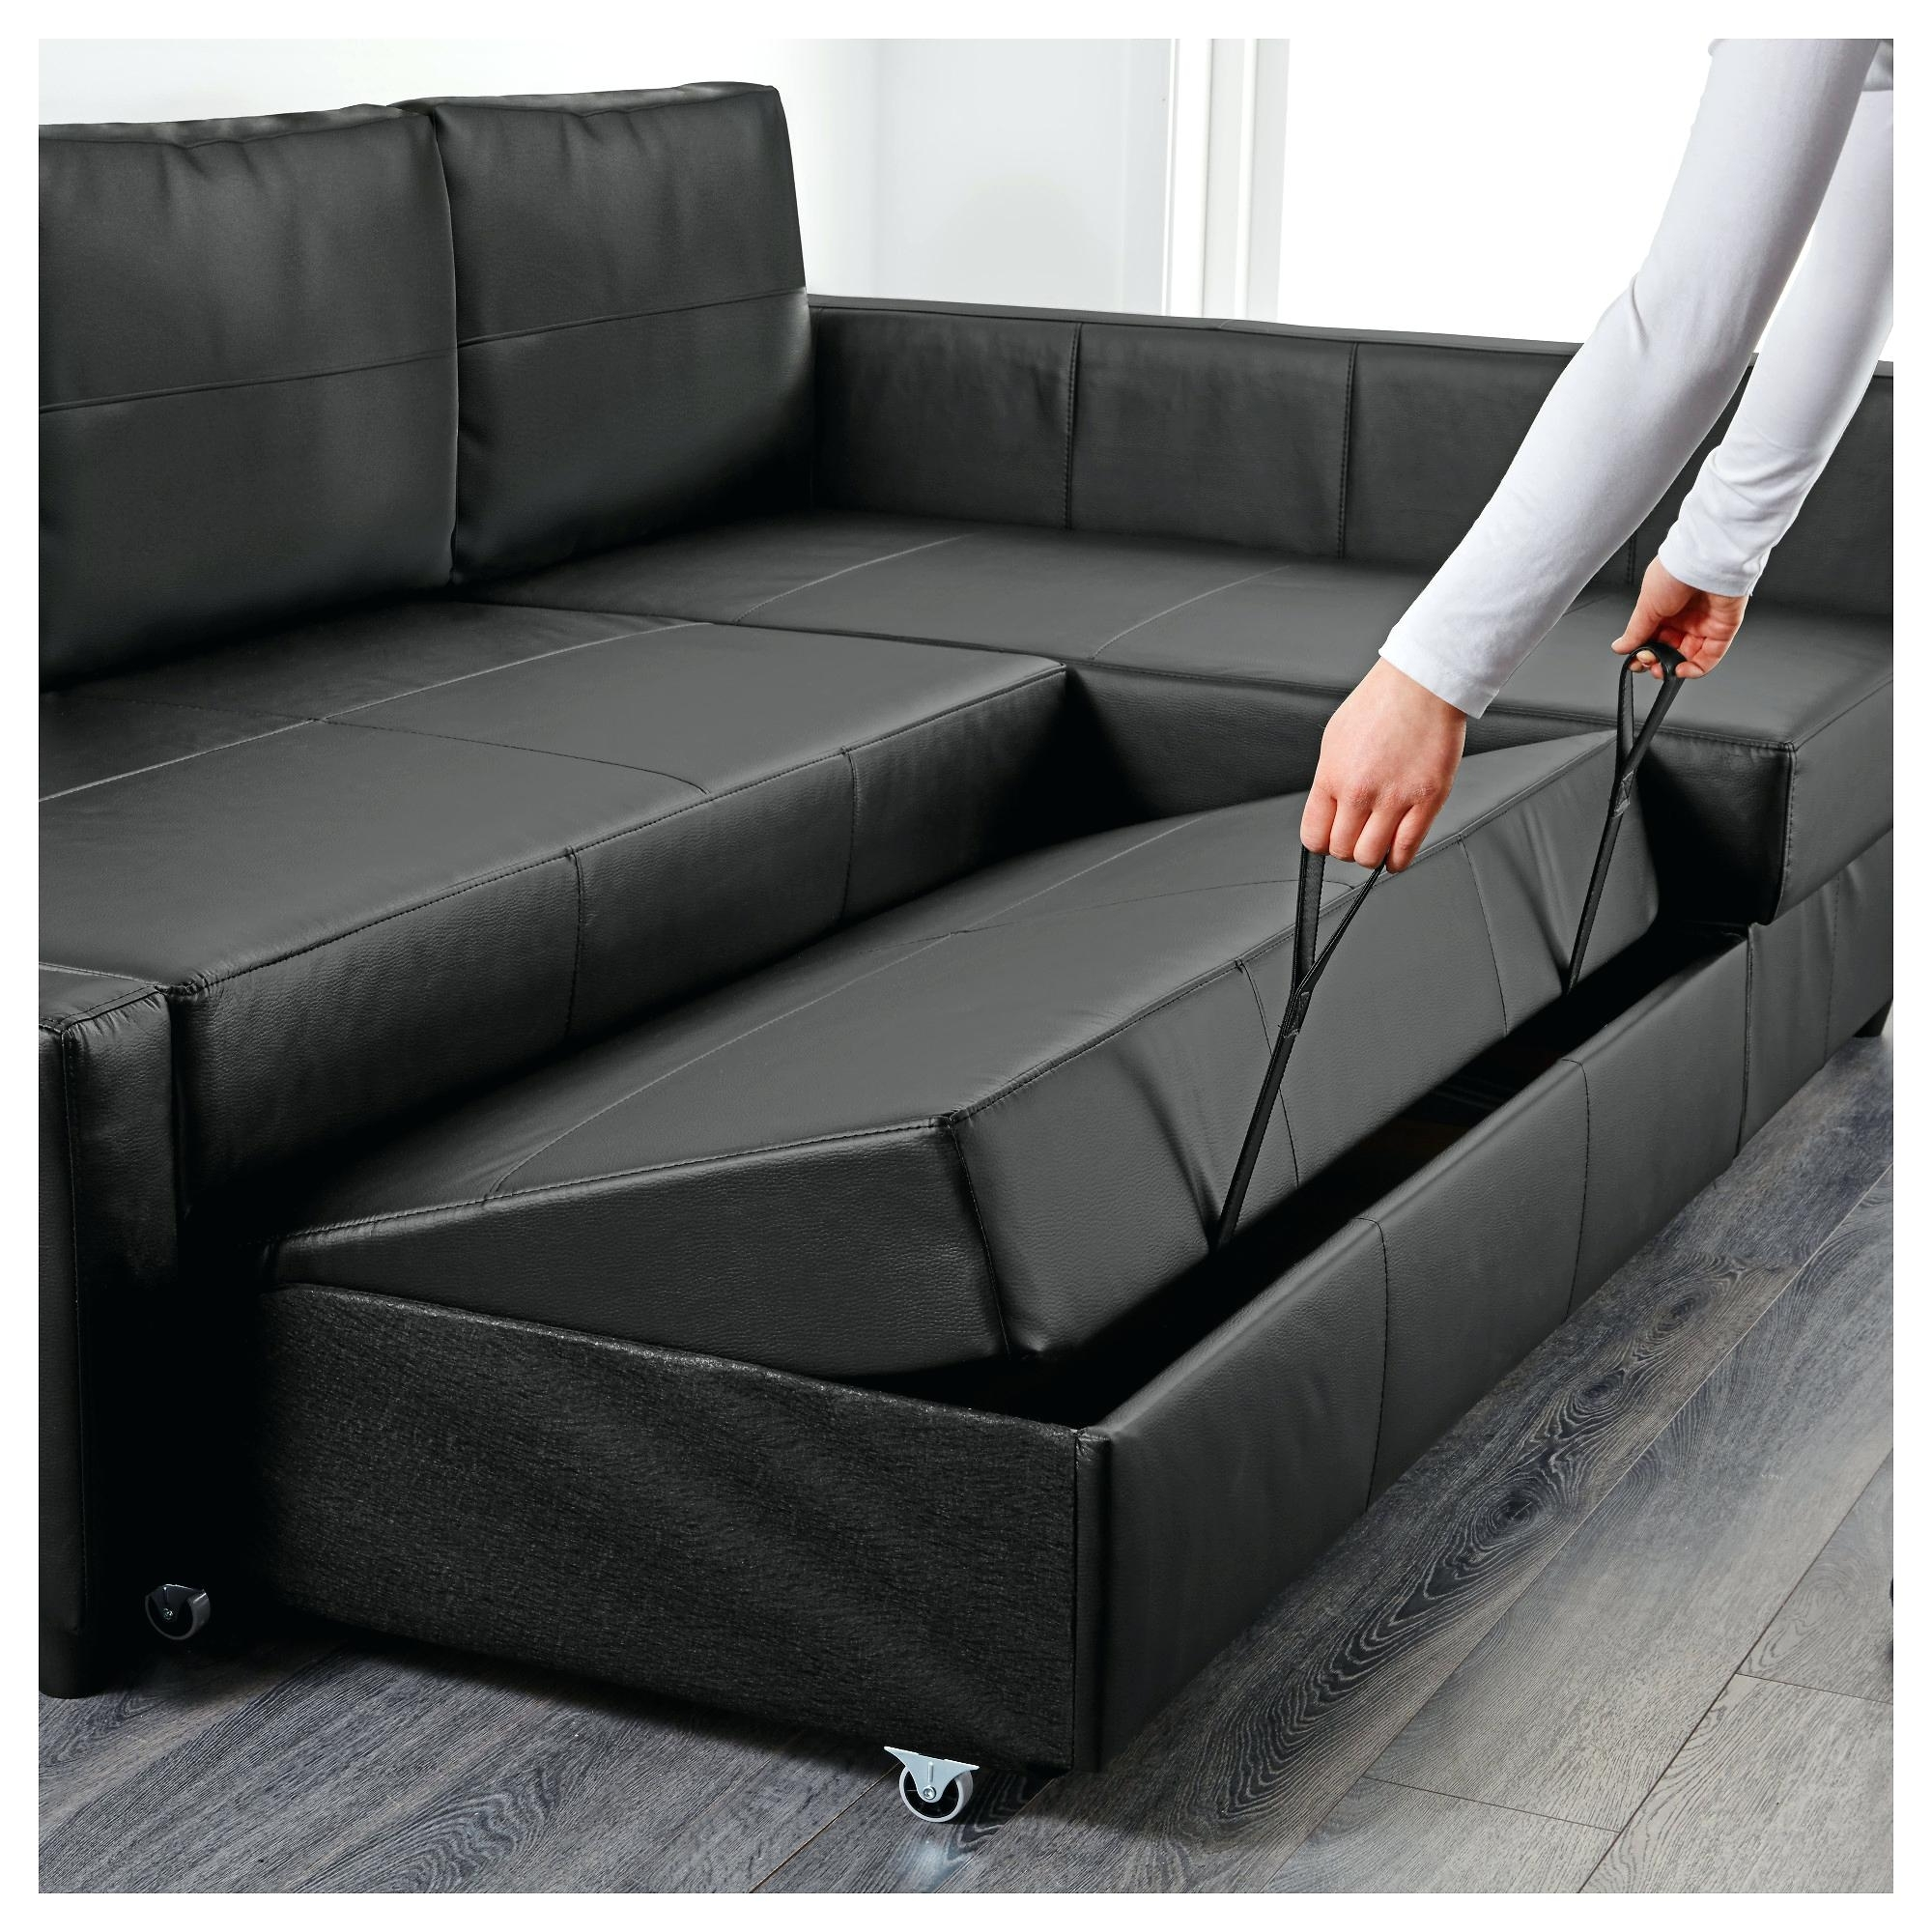 2019 Sectional Sofa Bed Halifax – Adriane With Regard To Halifax Sectional Sofas (View 3 of 20)